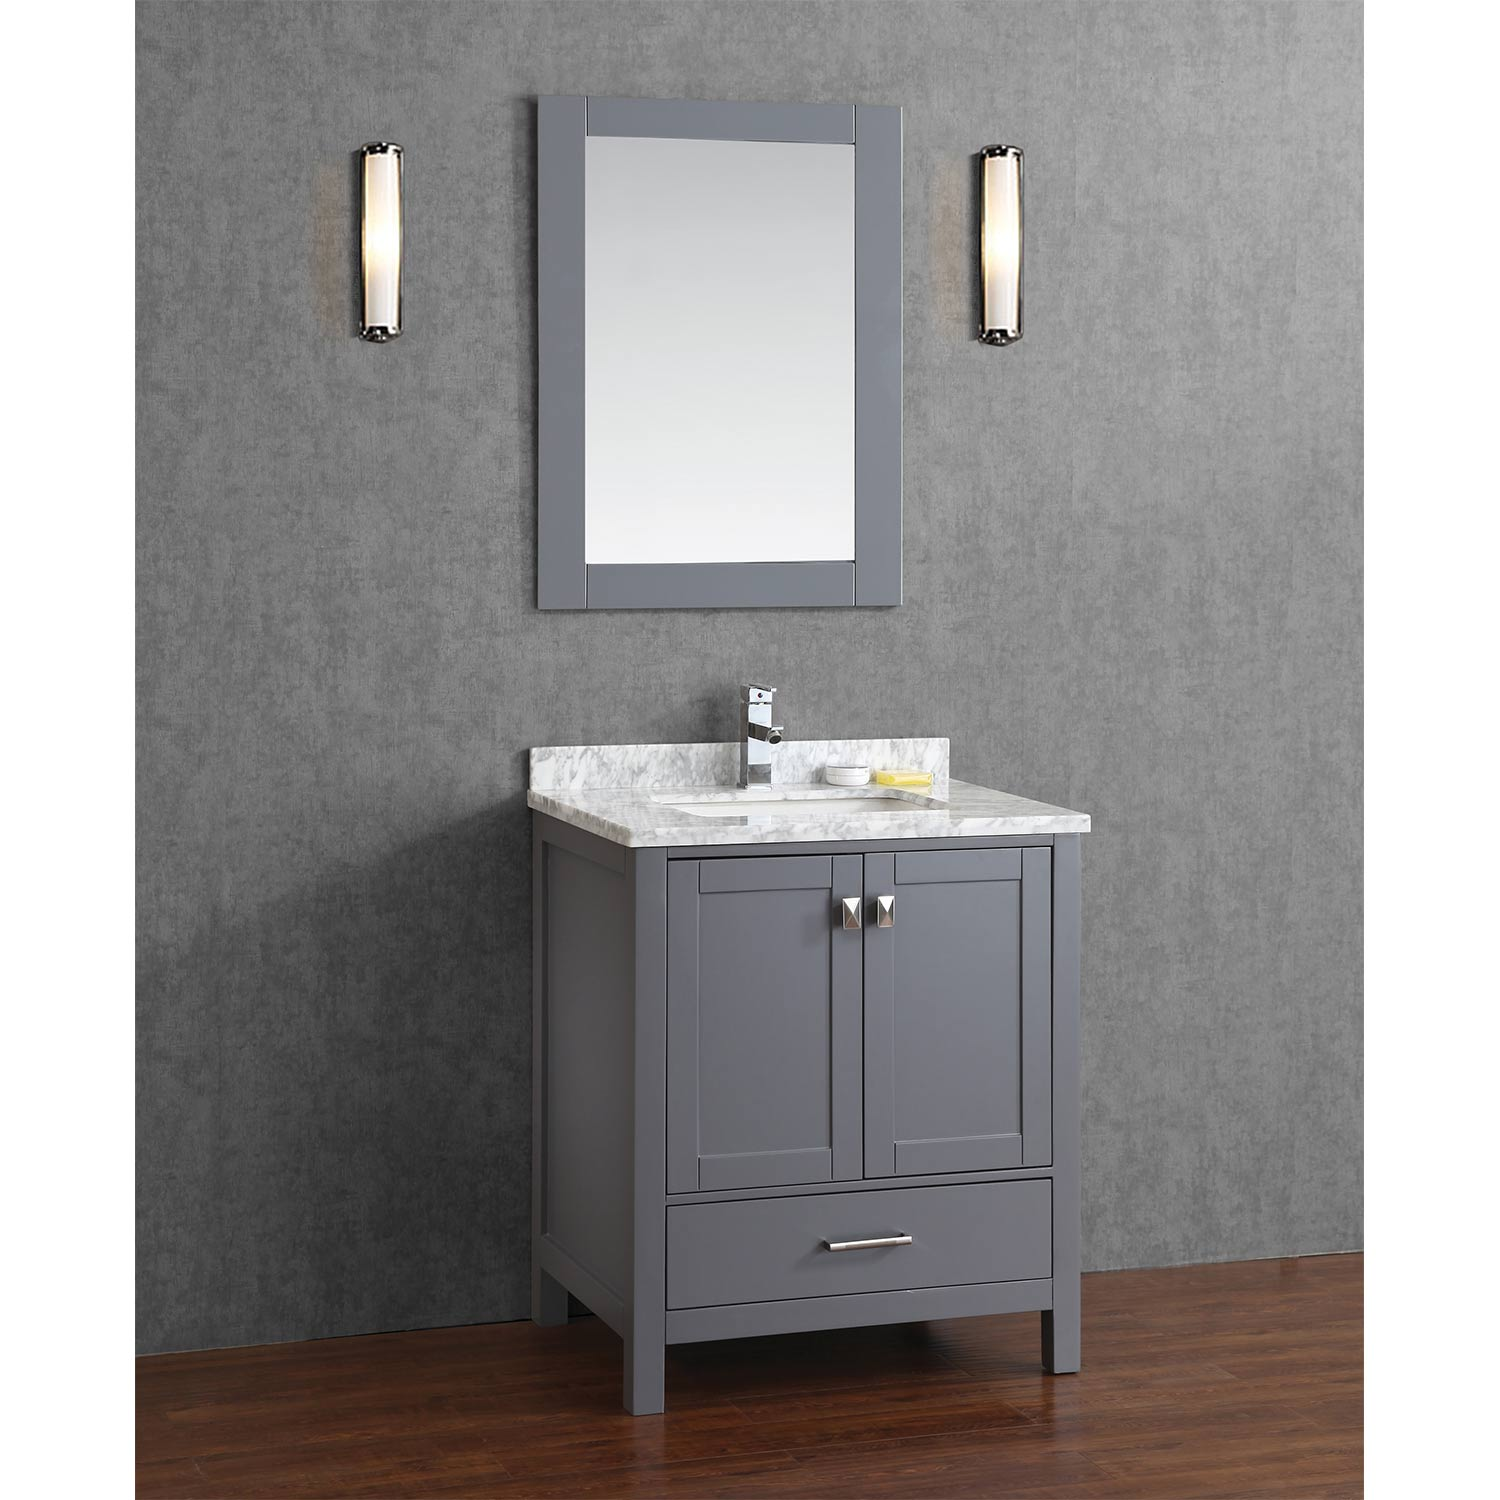 Buy vincent 30 inch solid wood double bathroom vanity in for Bathroom cabinets 30 inch